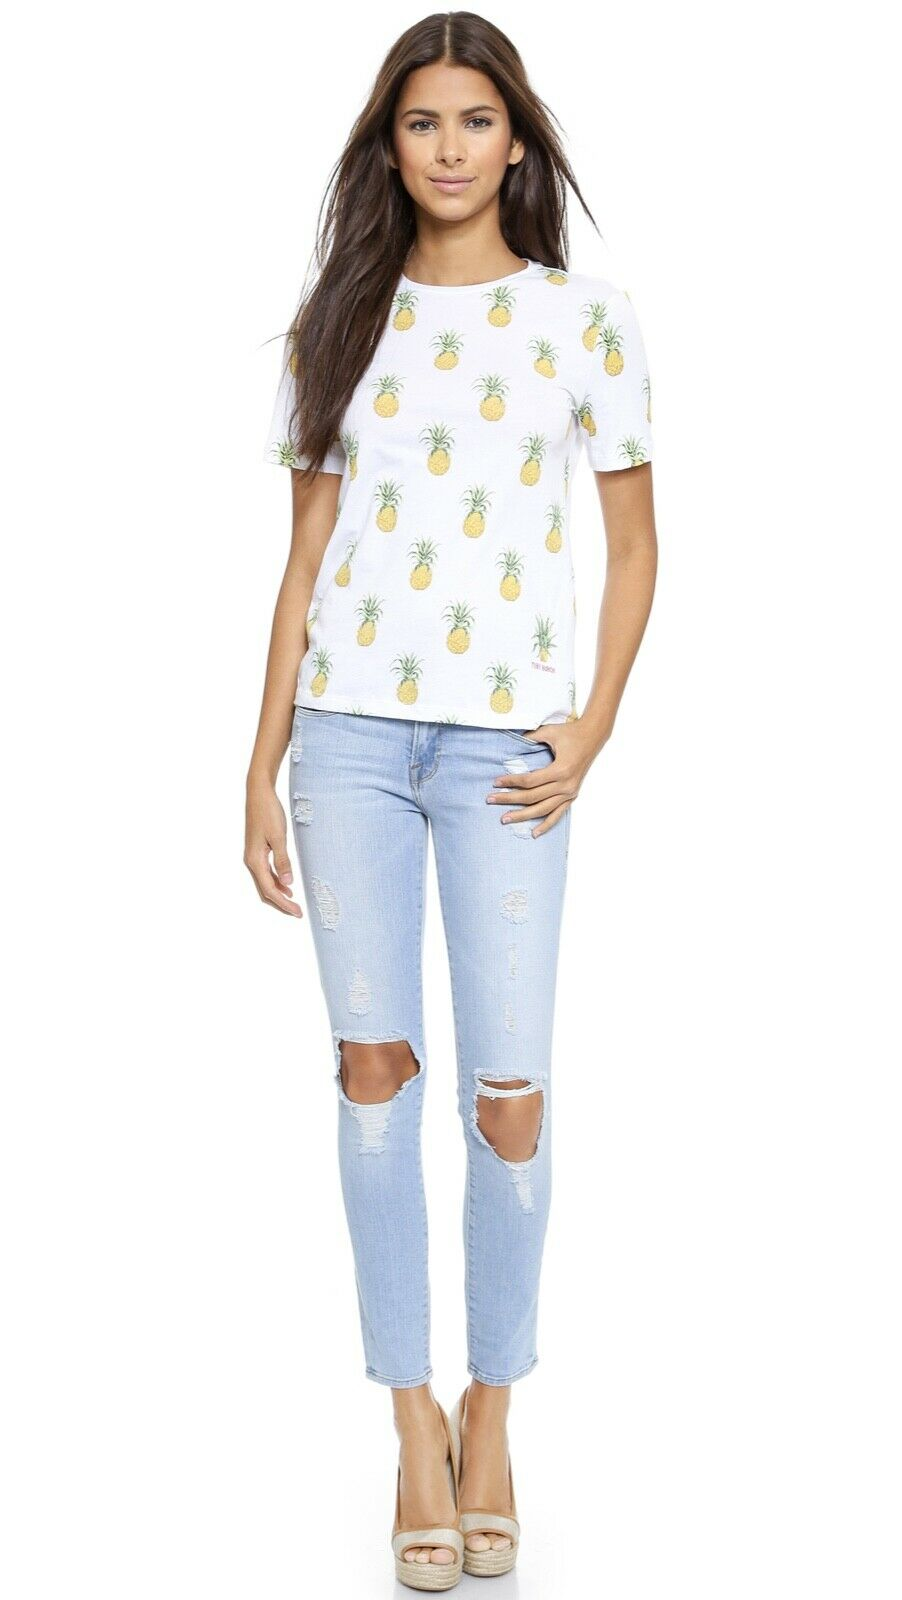 Tory Burch Cathy Tee T shirt M Pineapple Print Garden Party Spring Cotton 6 8